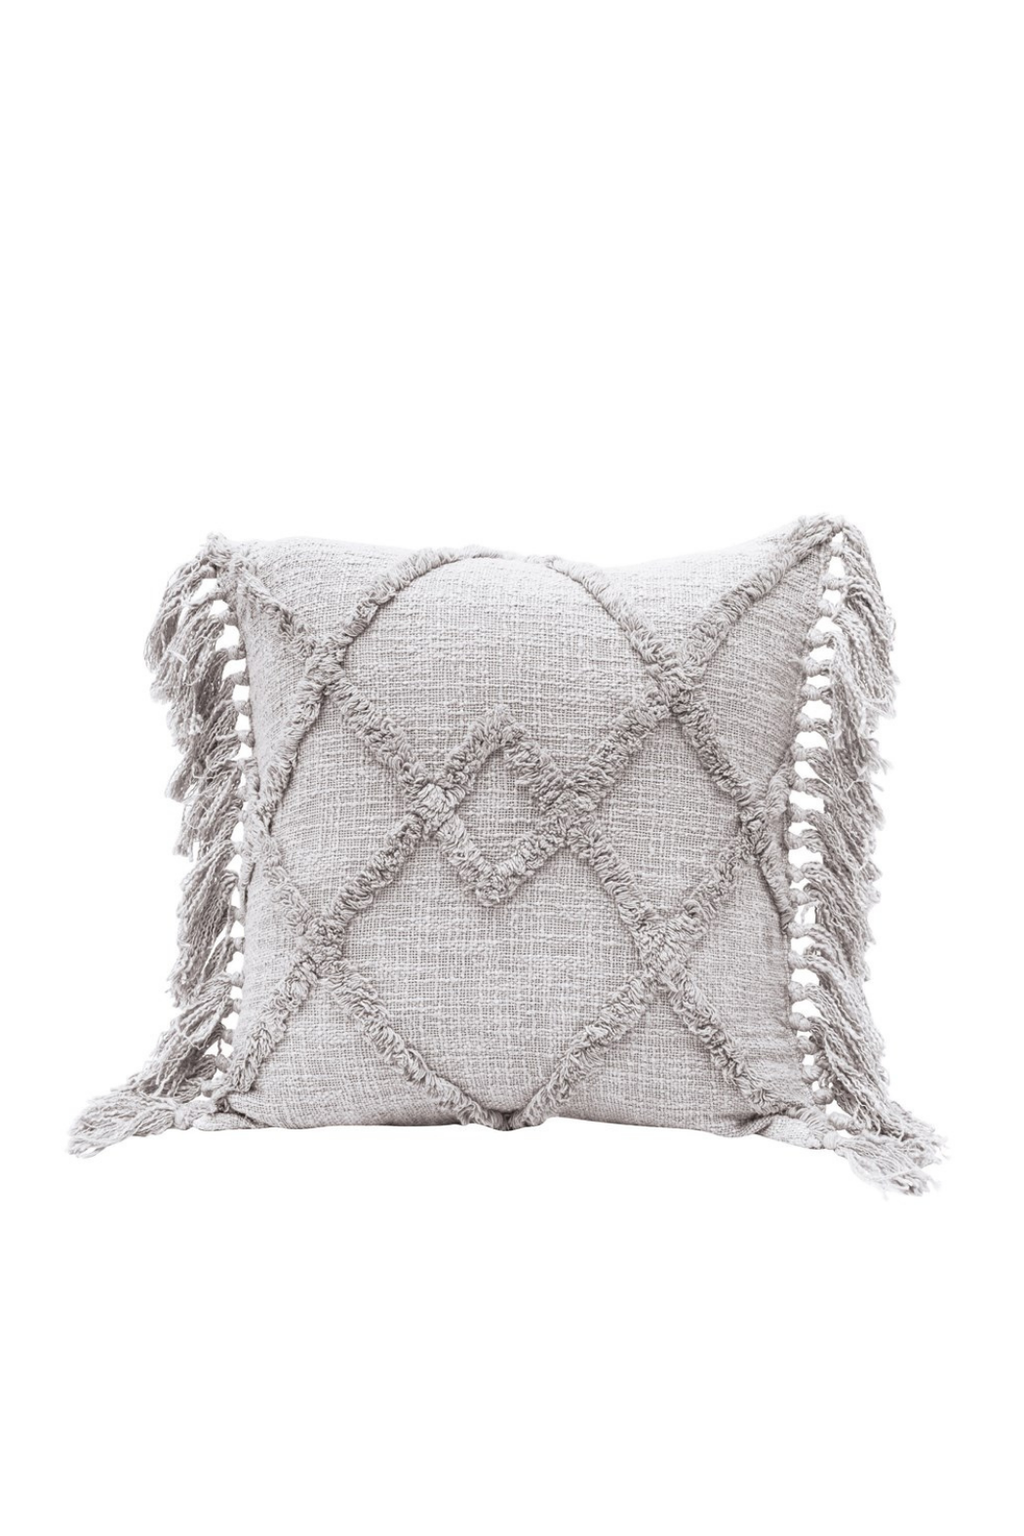 Creative Co-op Grey Tufted Diamond Cotton Pillow with Tassels DF4566